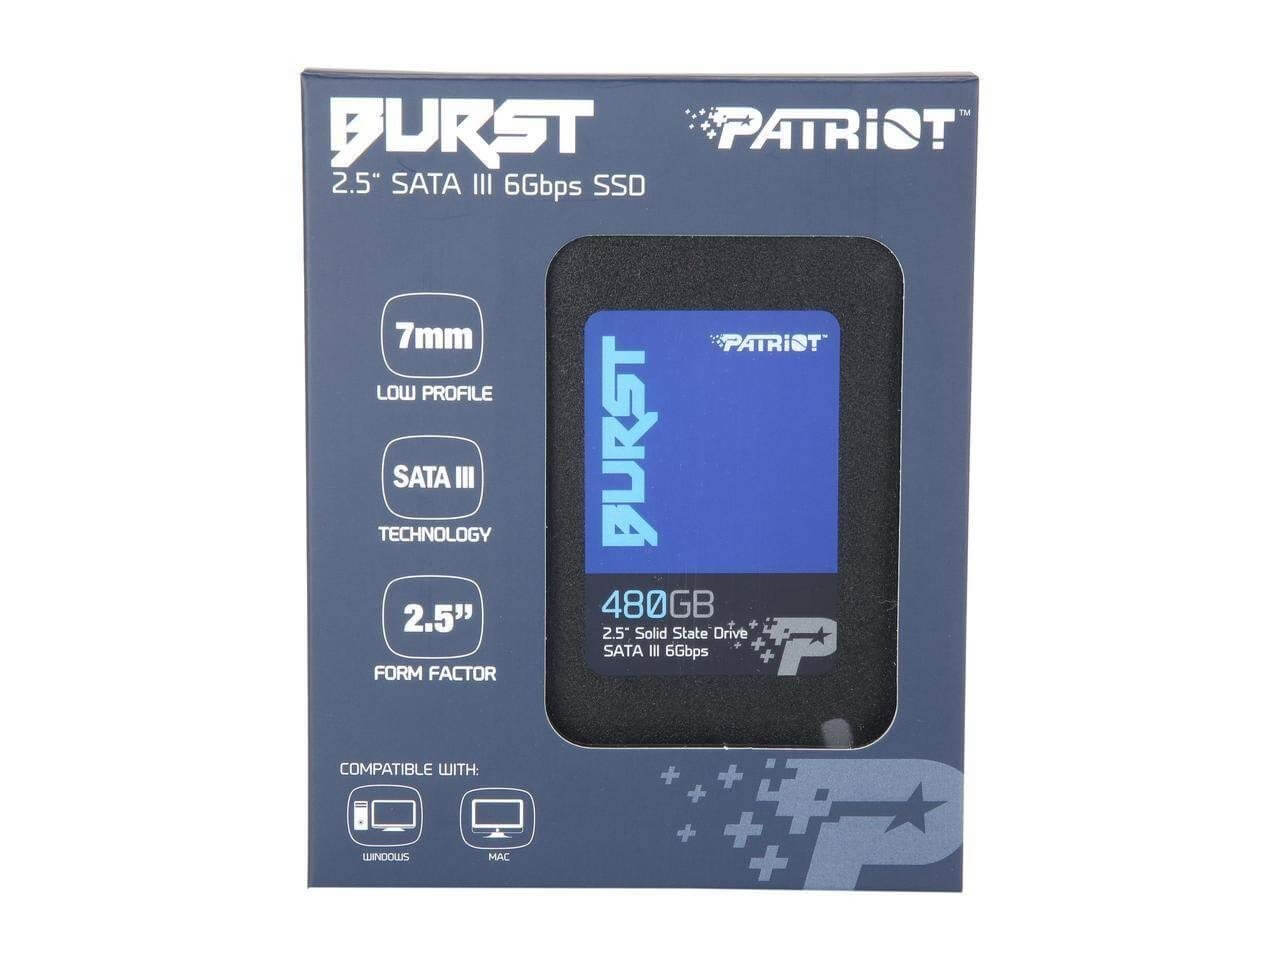 DYSK SSD PATRIOT BURST 2,5